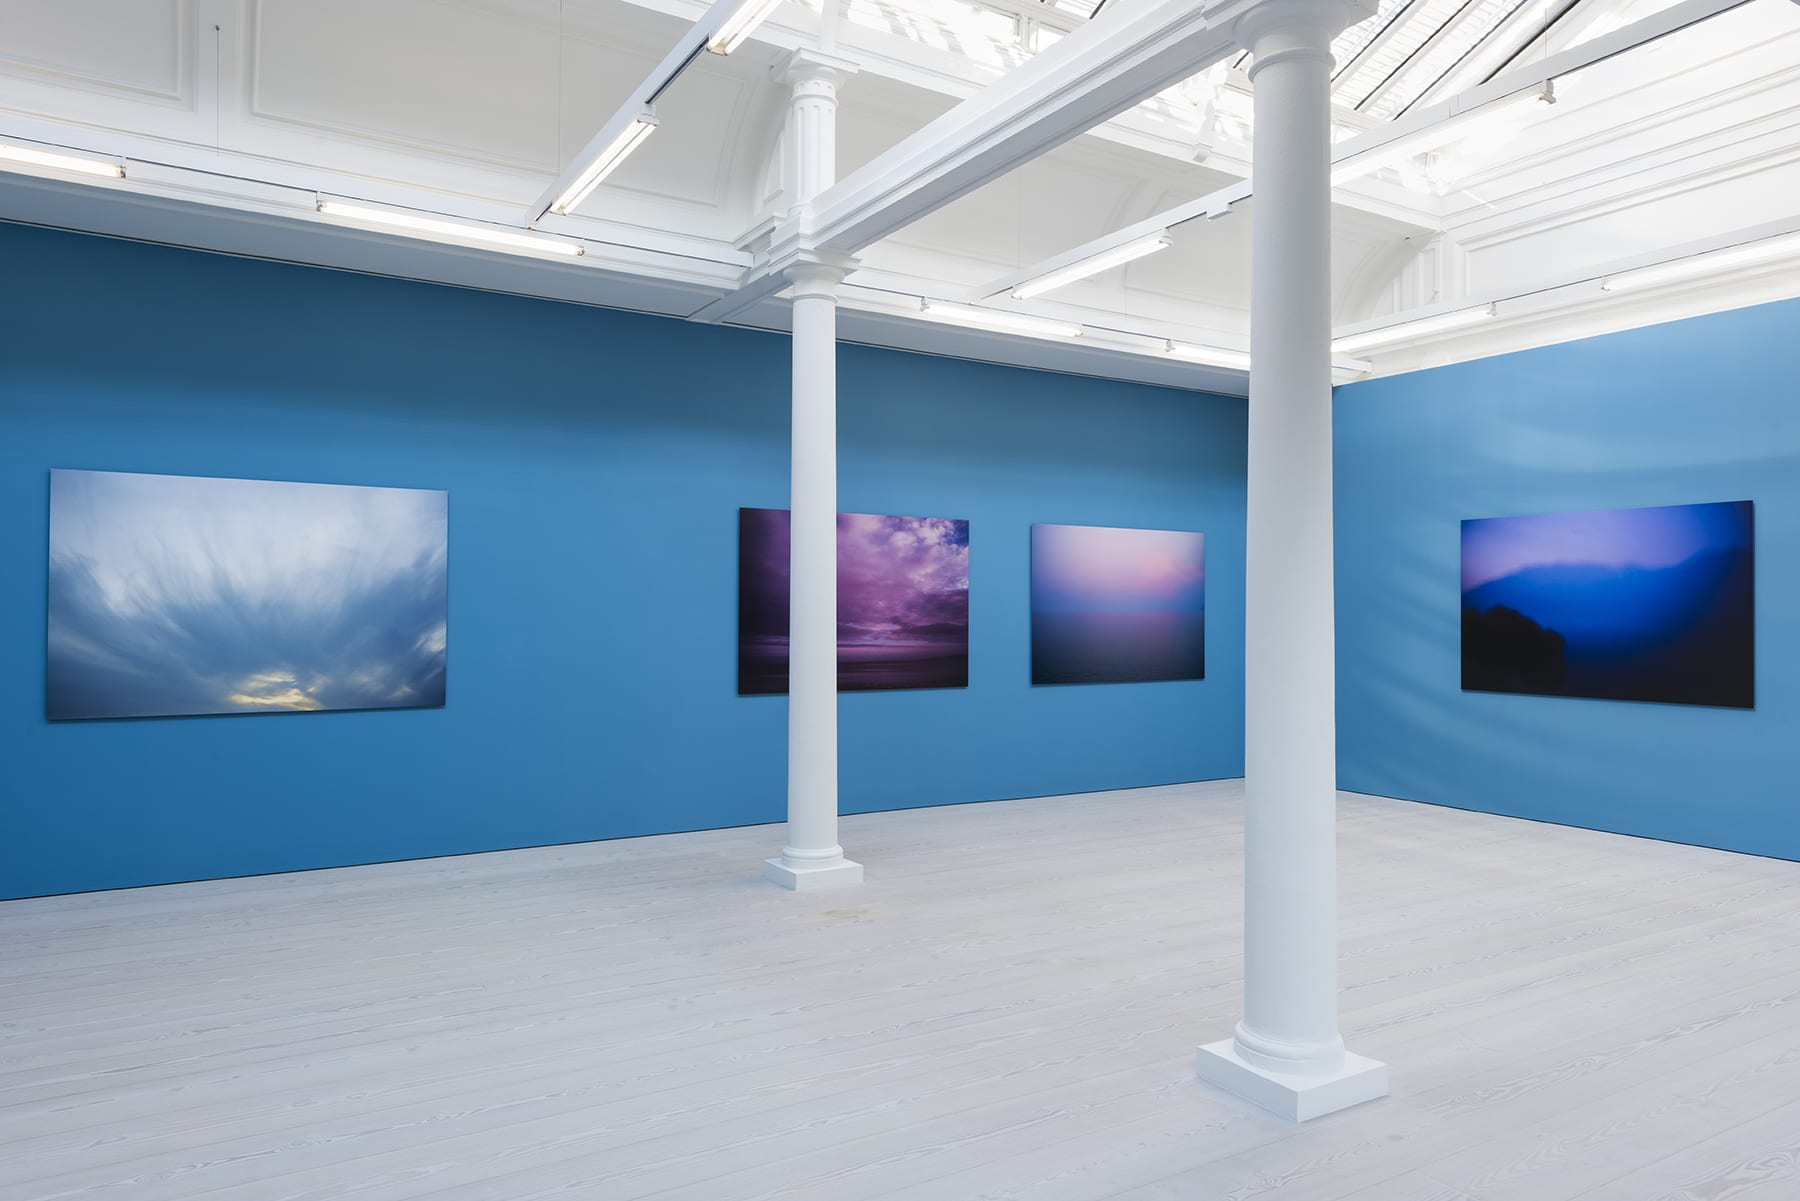 4 large color photographs of the sky hanging on a bright blue wall in a room with skylights and 2 columns.